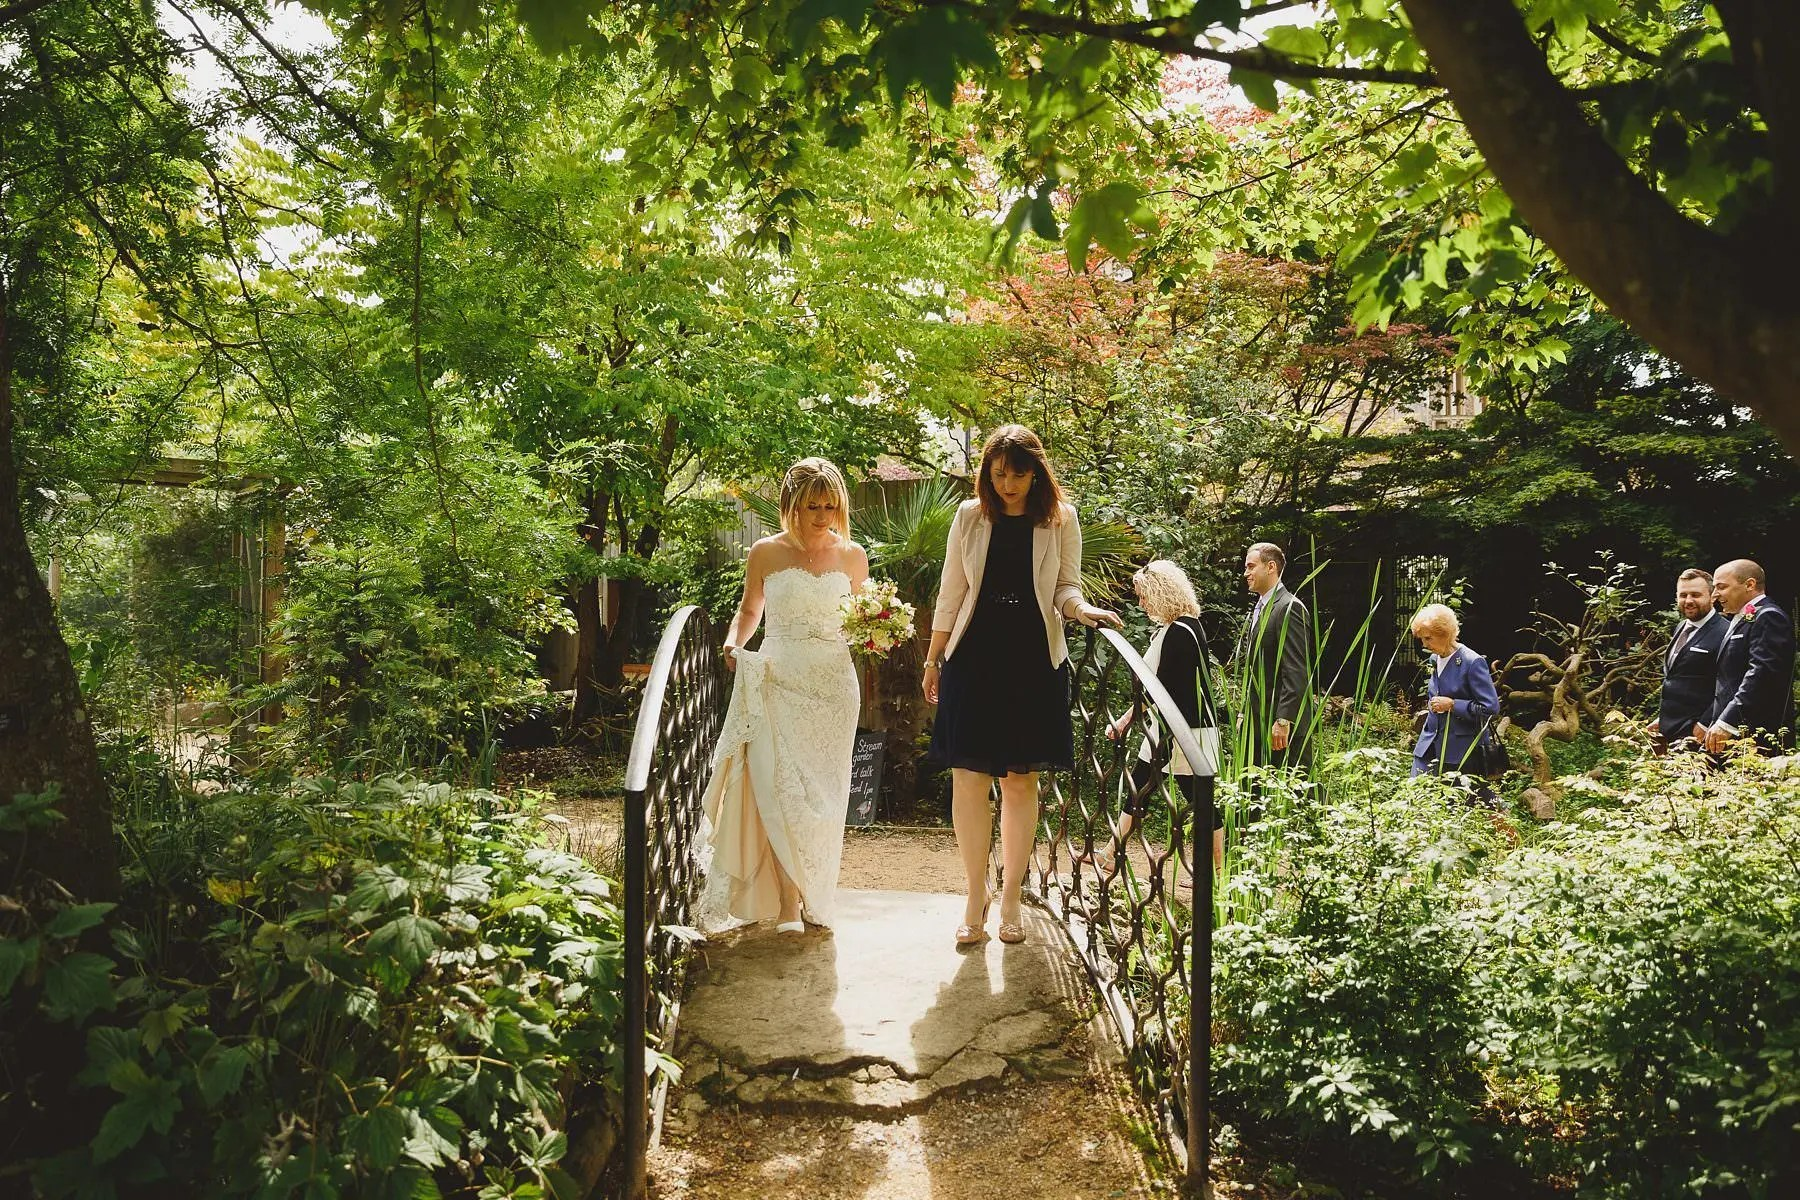 weddings-at-bristol-zoo-006